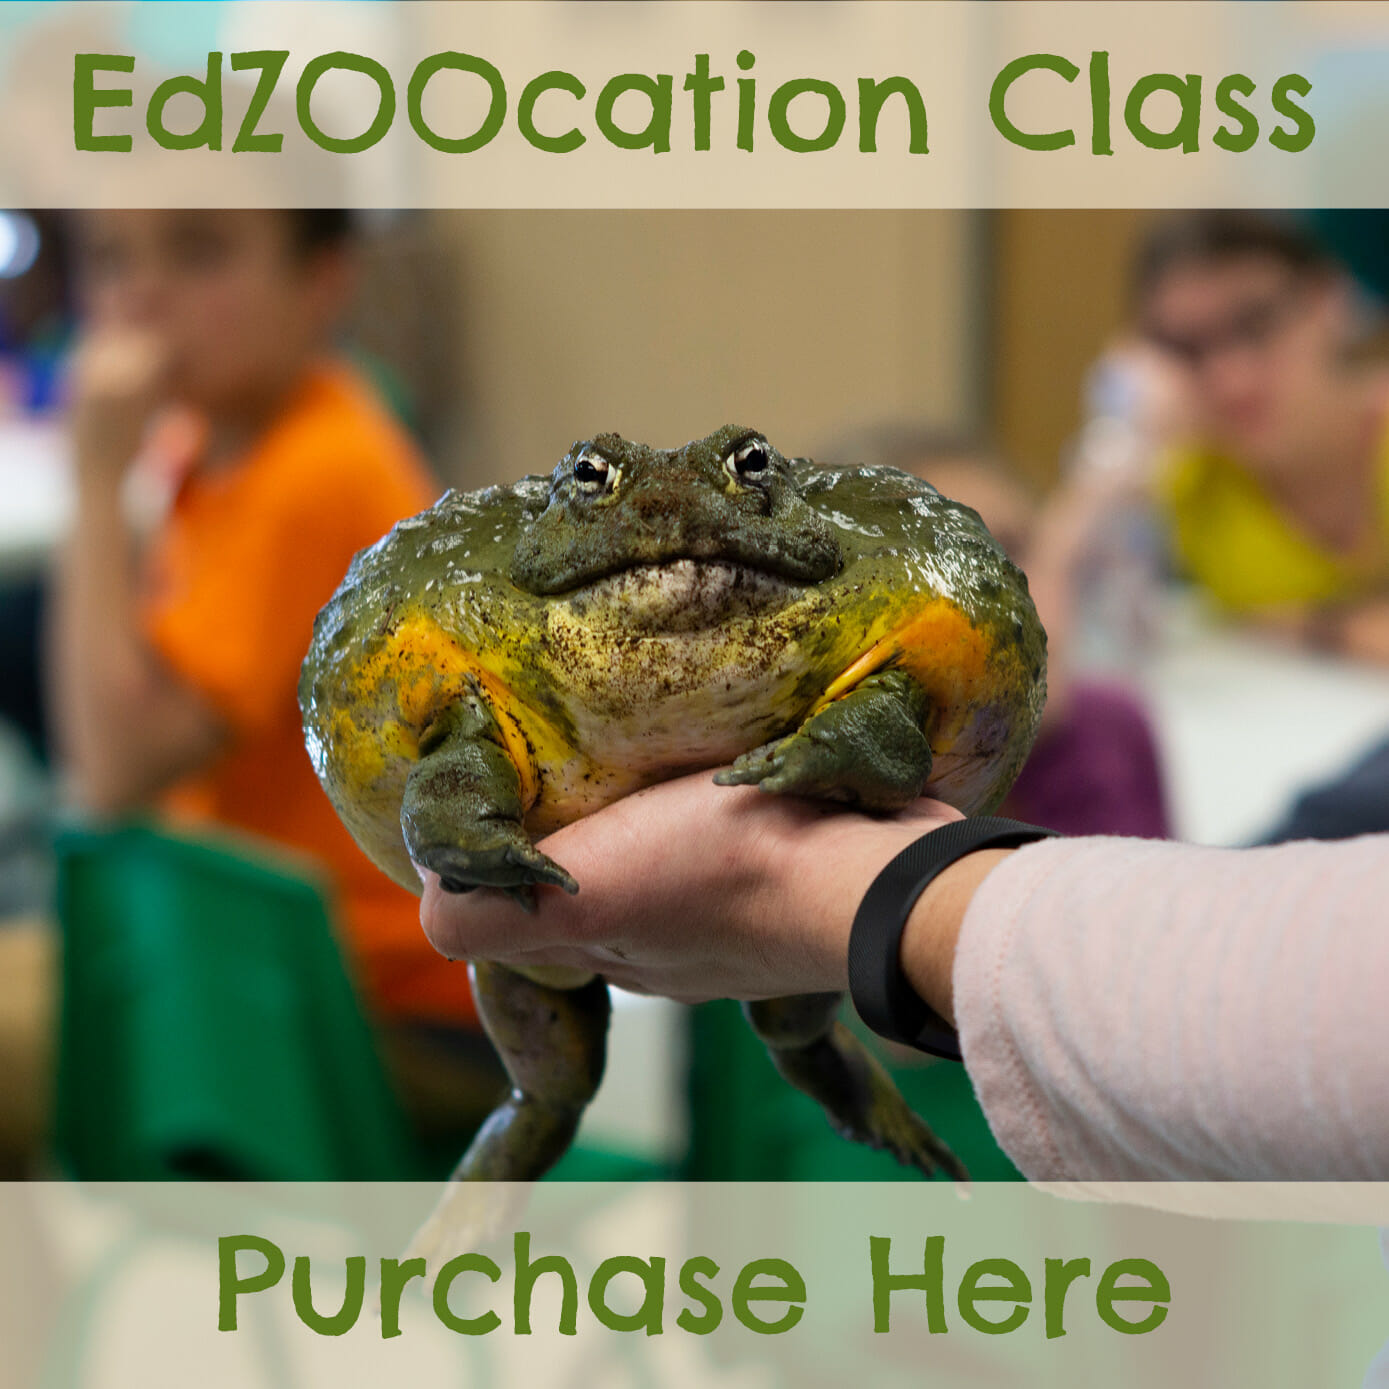 Purchase a Zoo class here